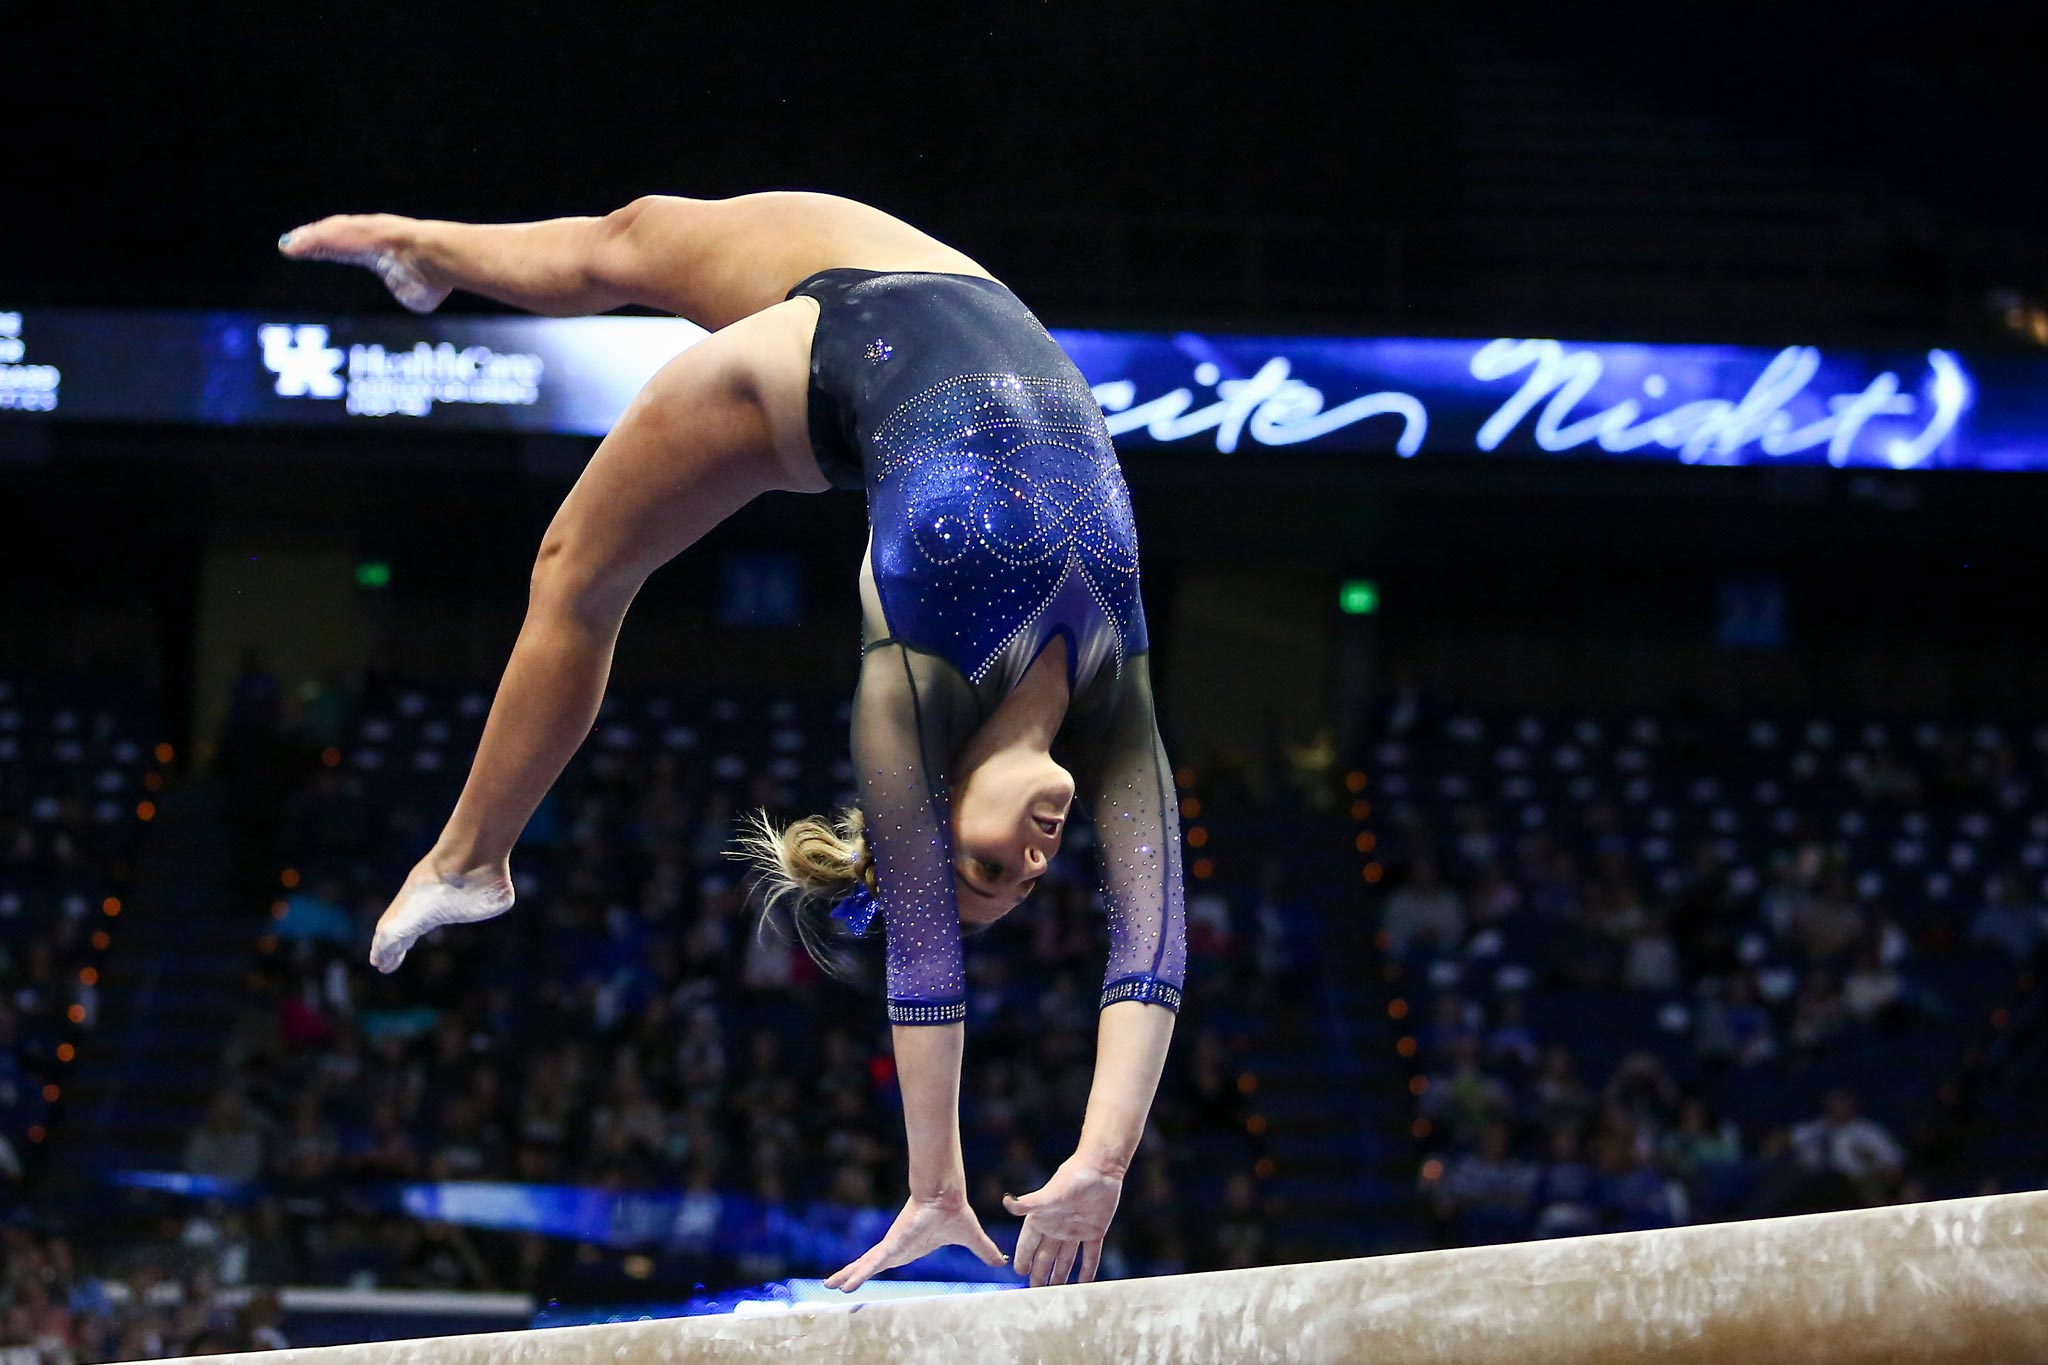 Mac flips backwards atop a balance beam, wearing a sparkly black and blue leotard and a blue bow in her hair.